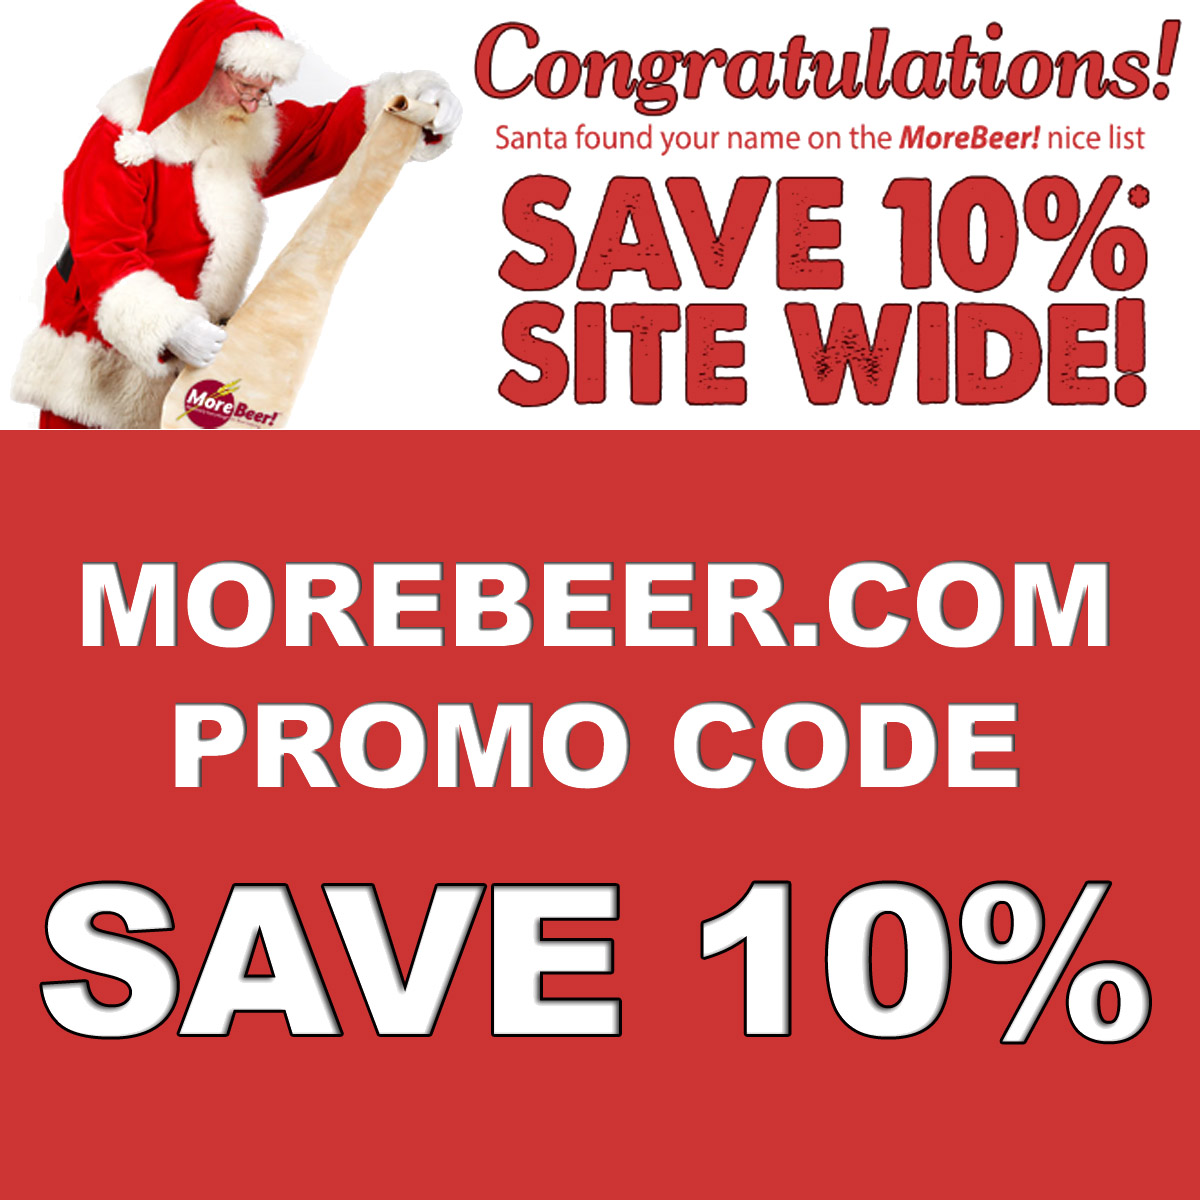 MoreBeer Save An Additional 10% At More Beer with MoreBeer.com Coupon Code NICELIST Coupon Code